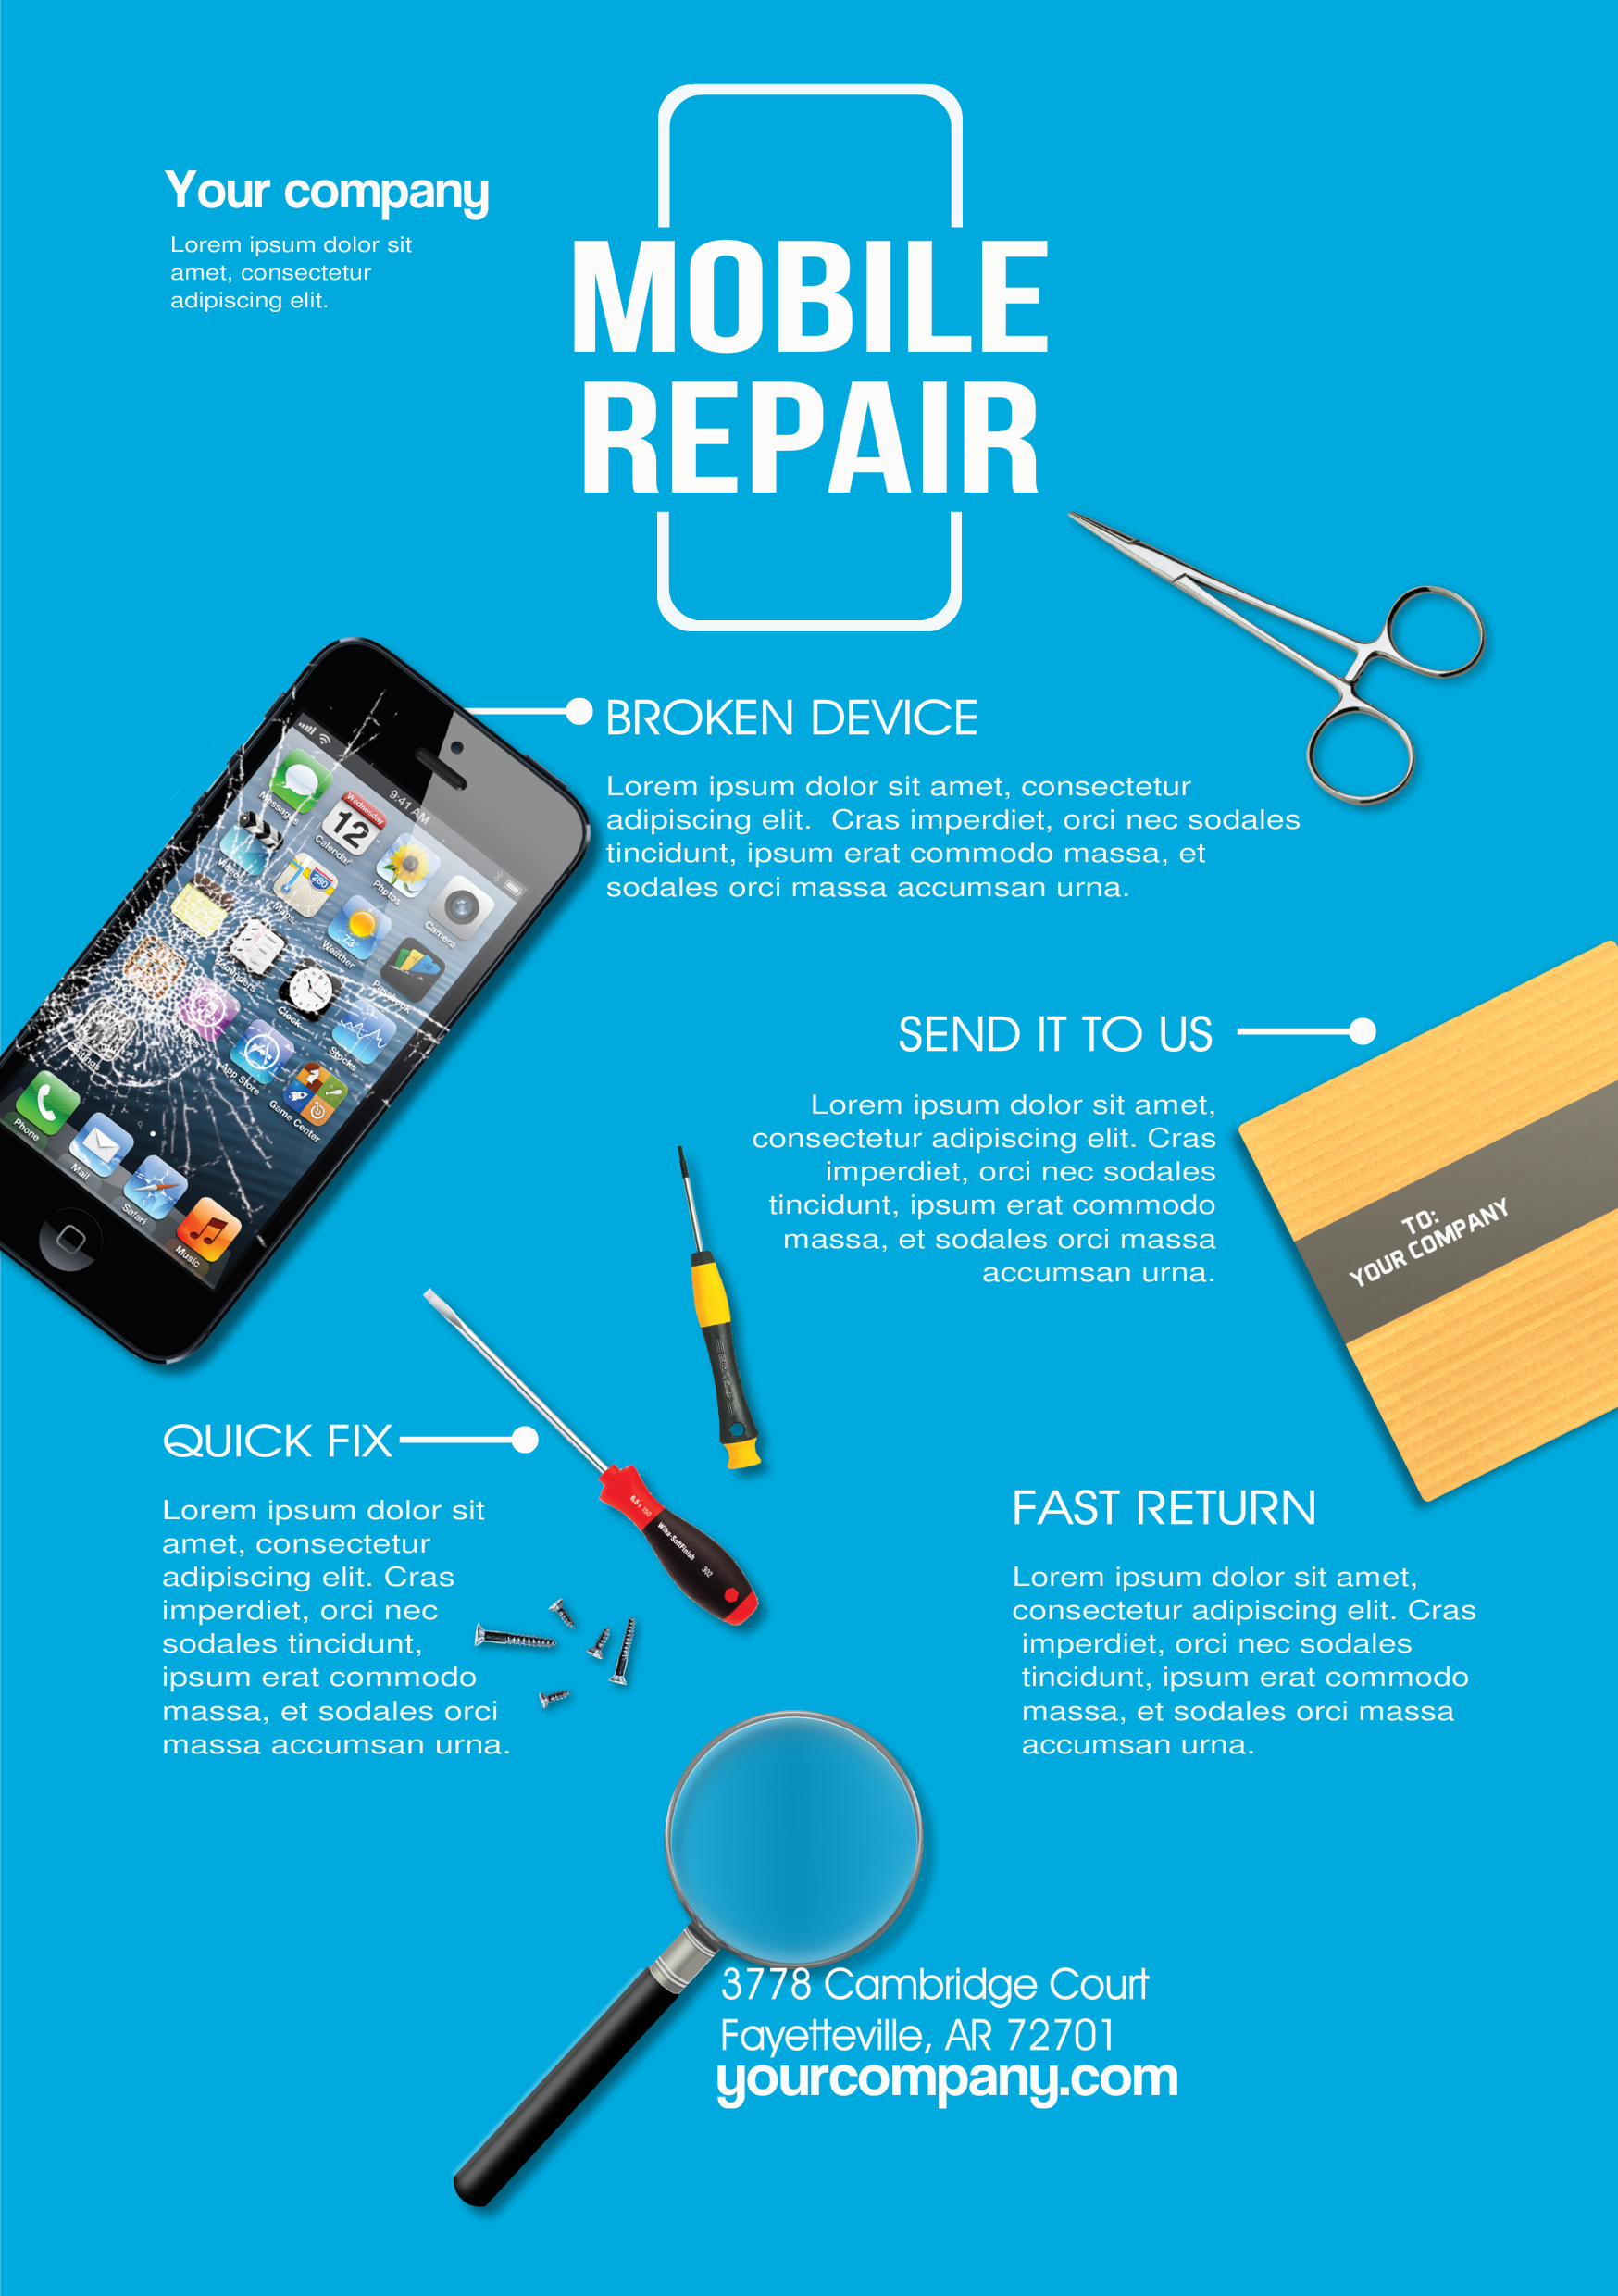 Mobile Phone Repair A Promotional Flyer HttpPremadevideosCom